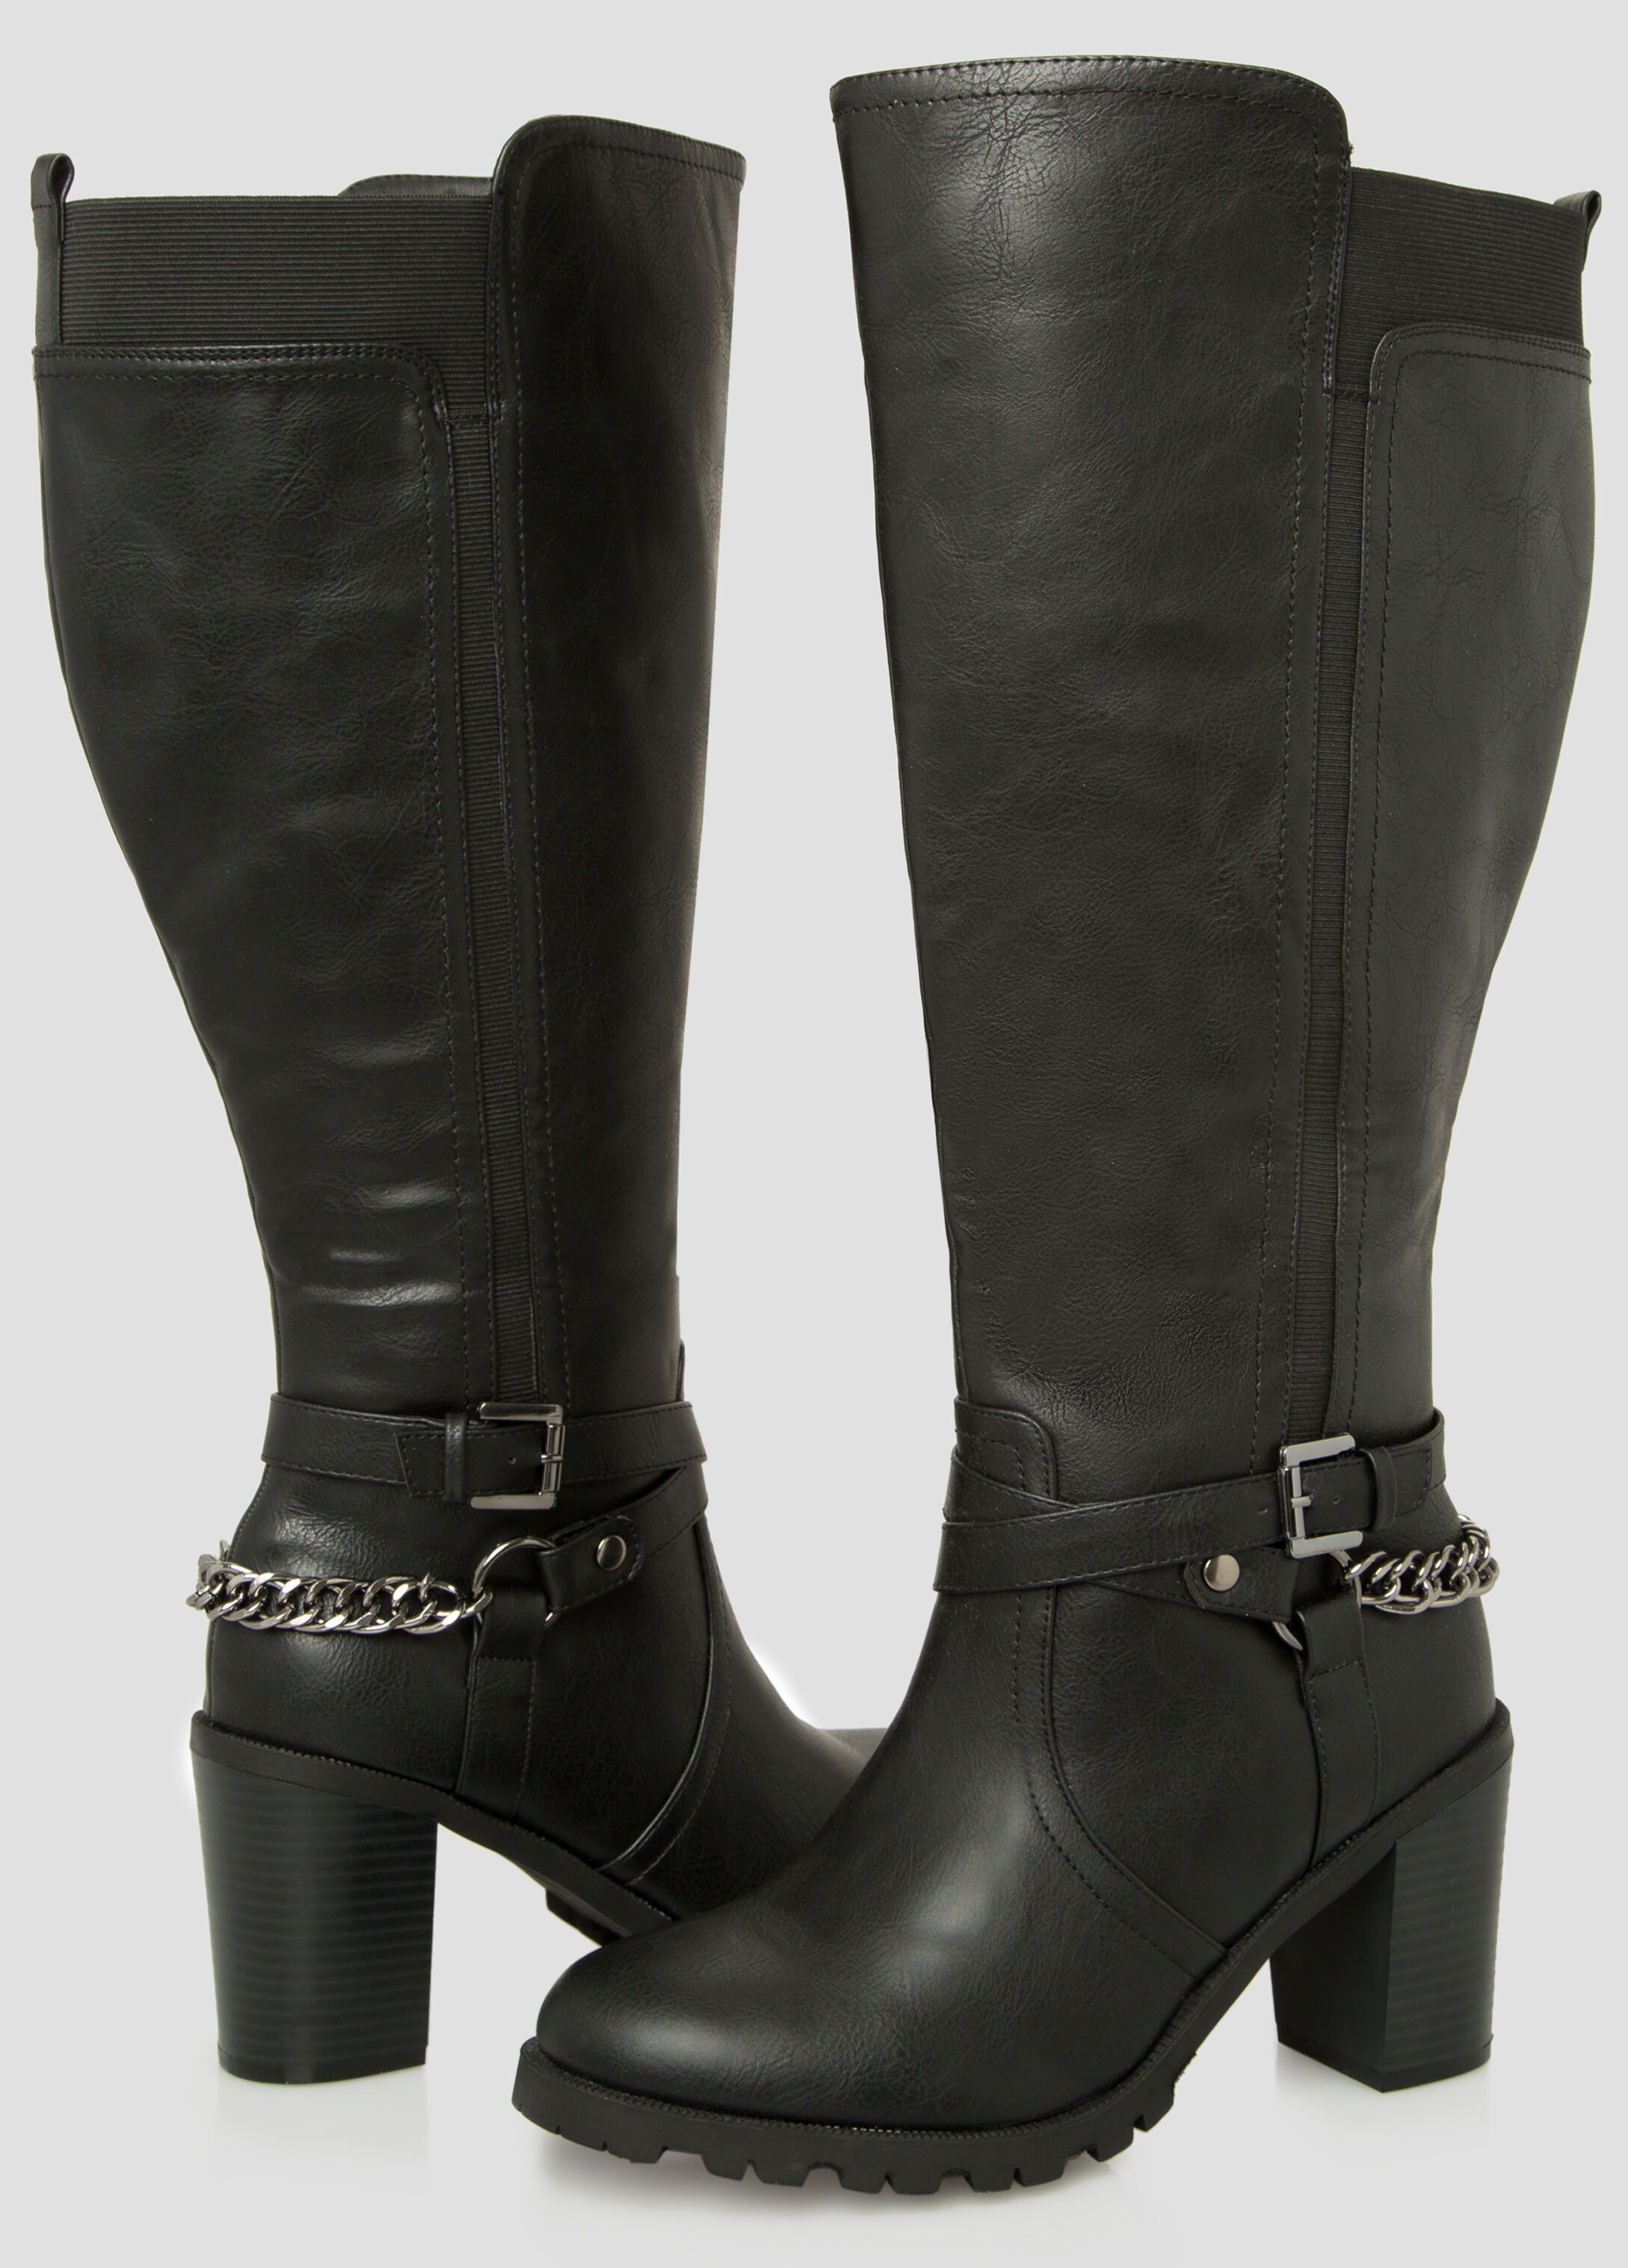 Chain Knee High Boot - Wide Calf Wide Width